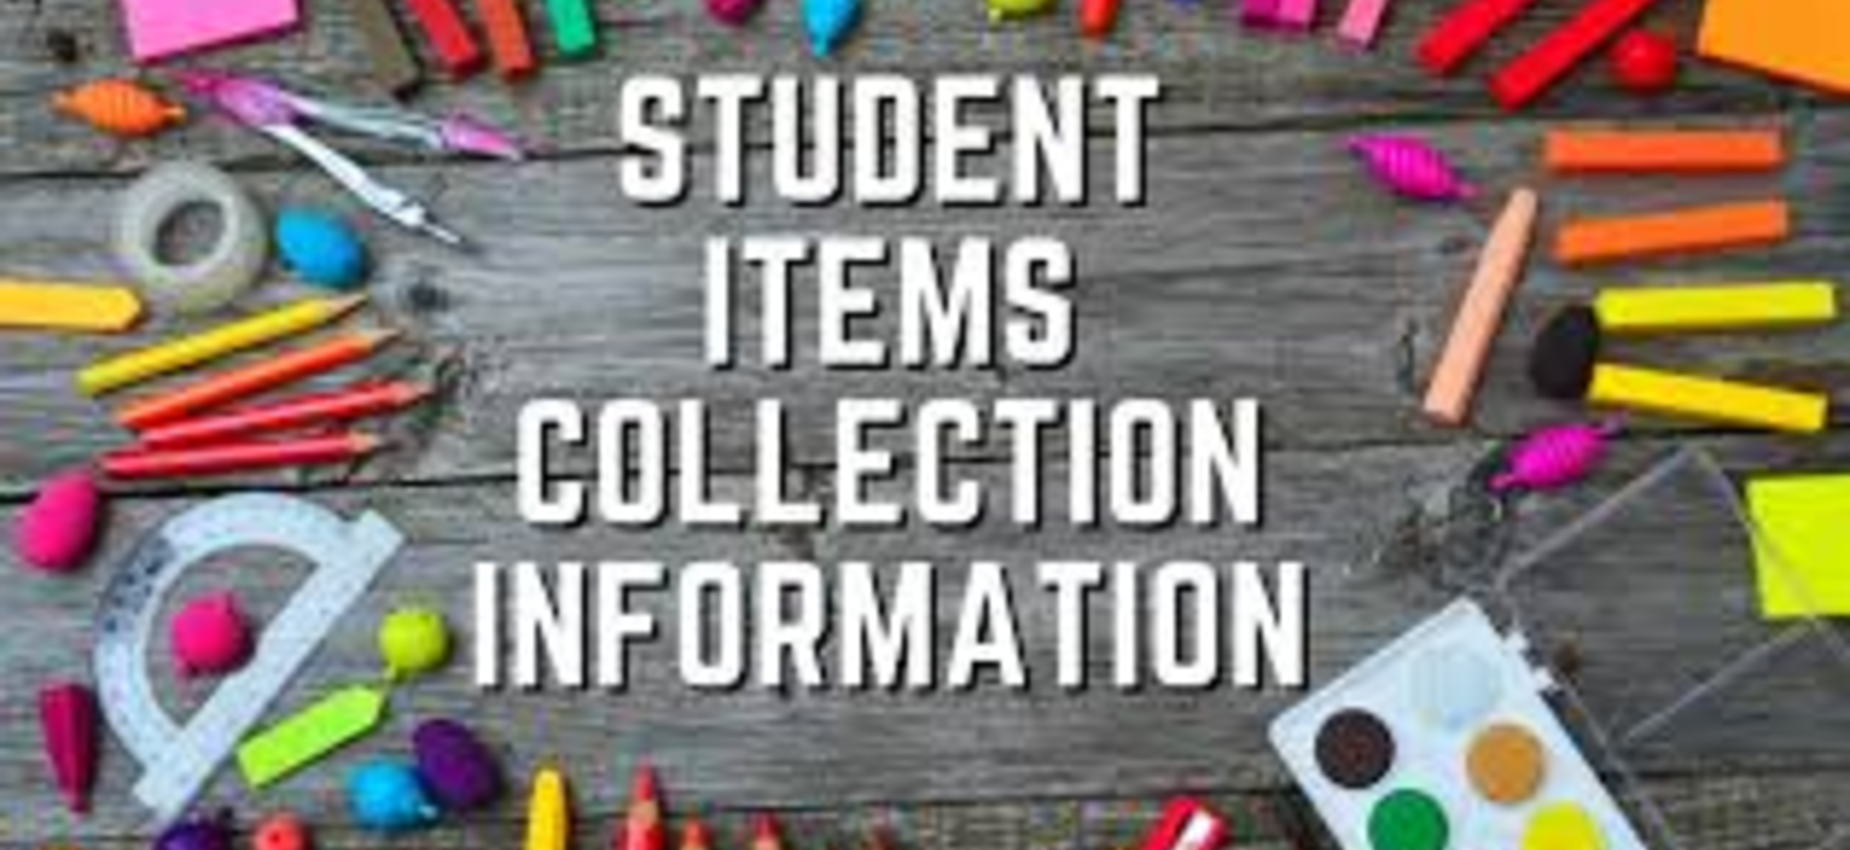 Student Items Collection